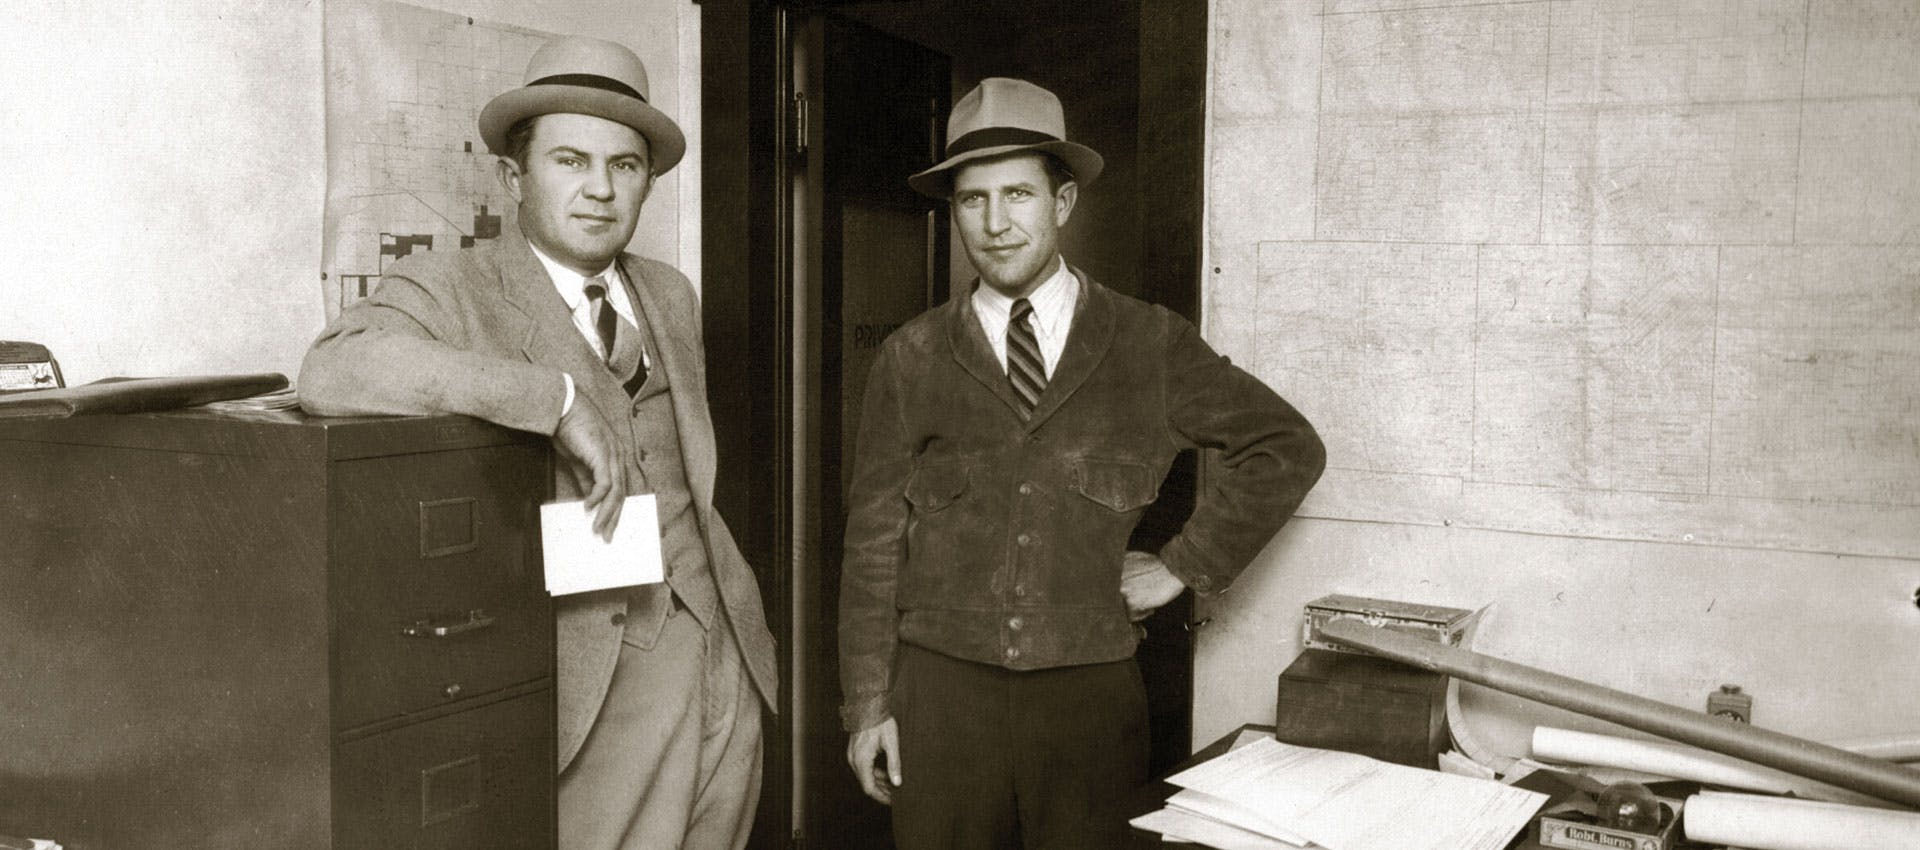 H.R. Stasney and A.V. Jones, Sr. in map room